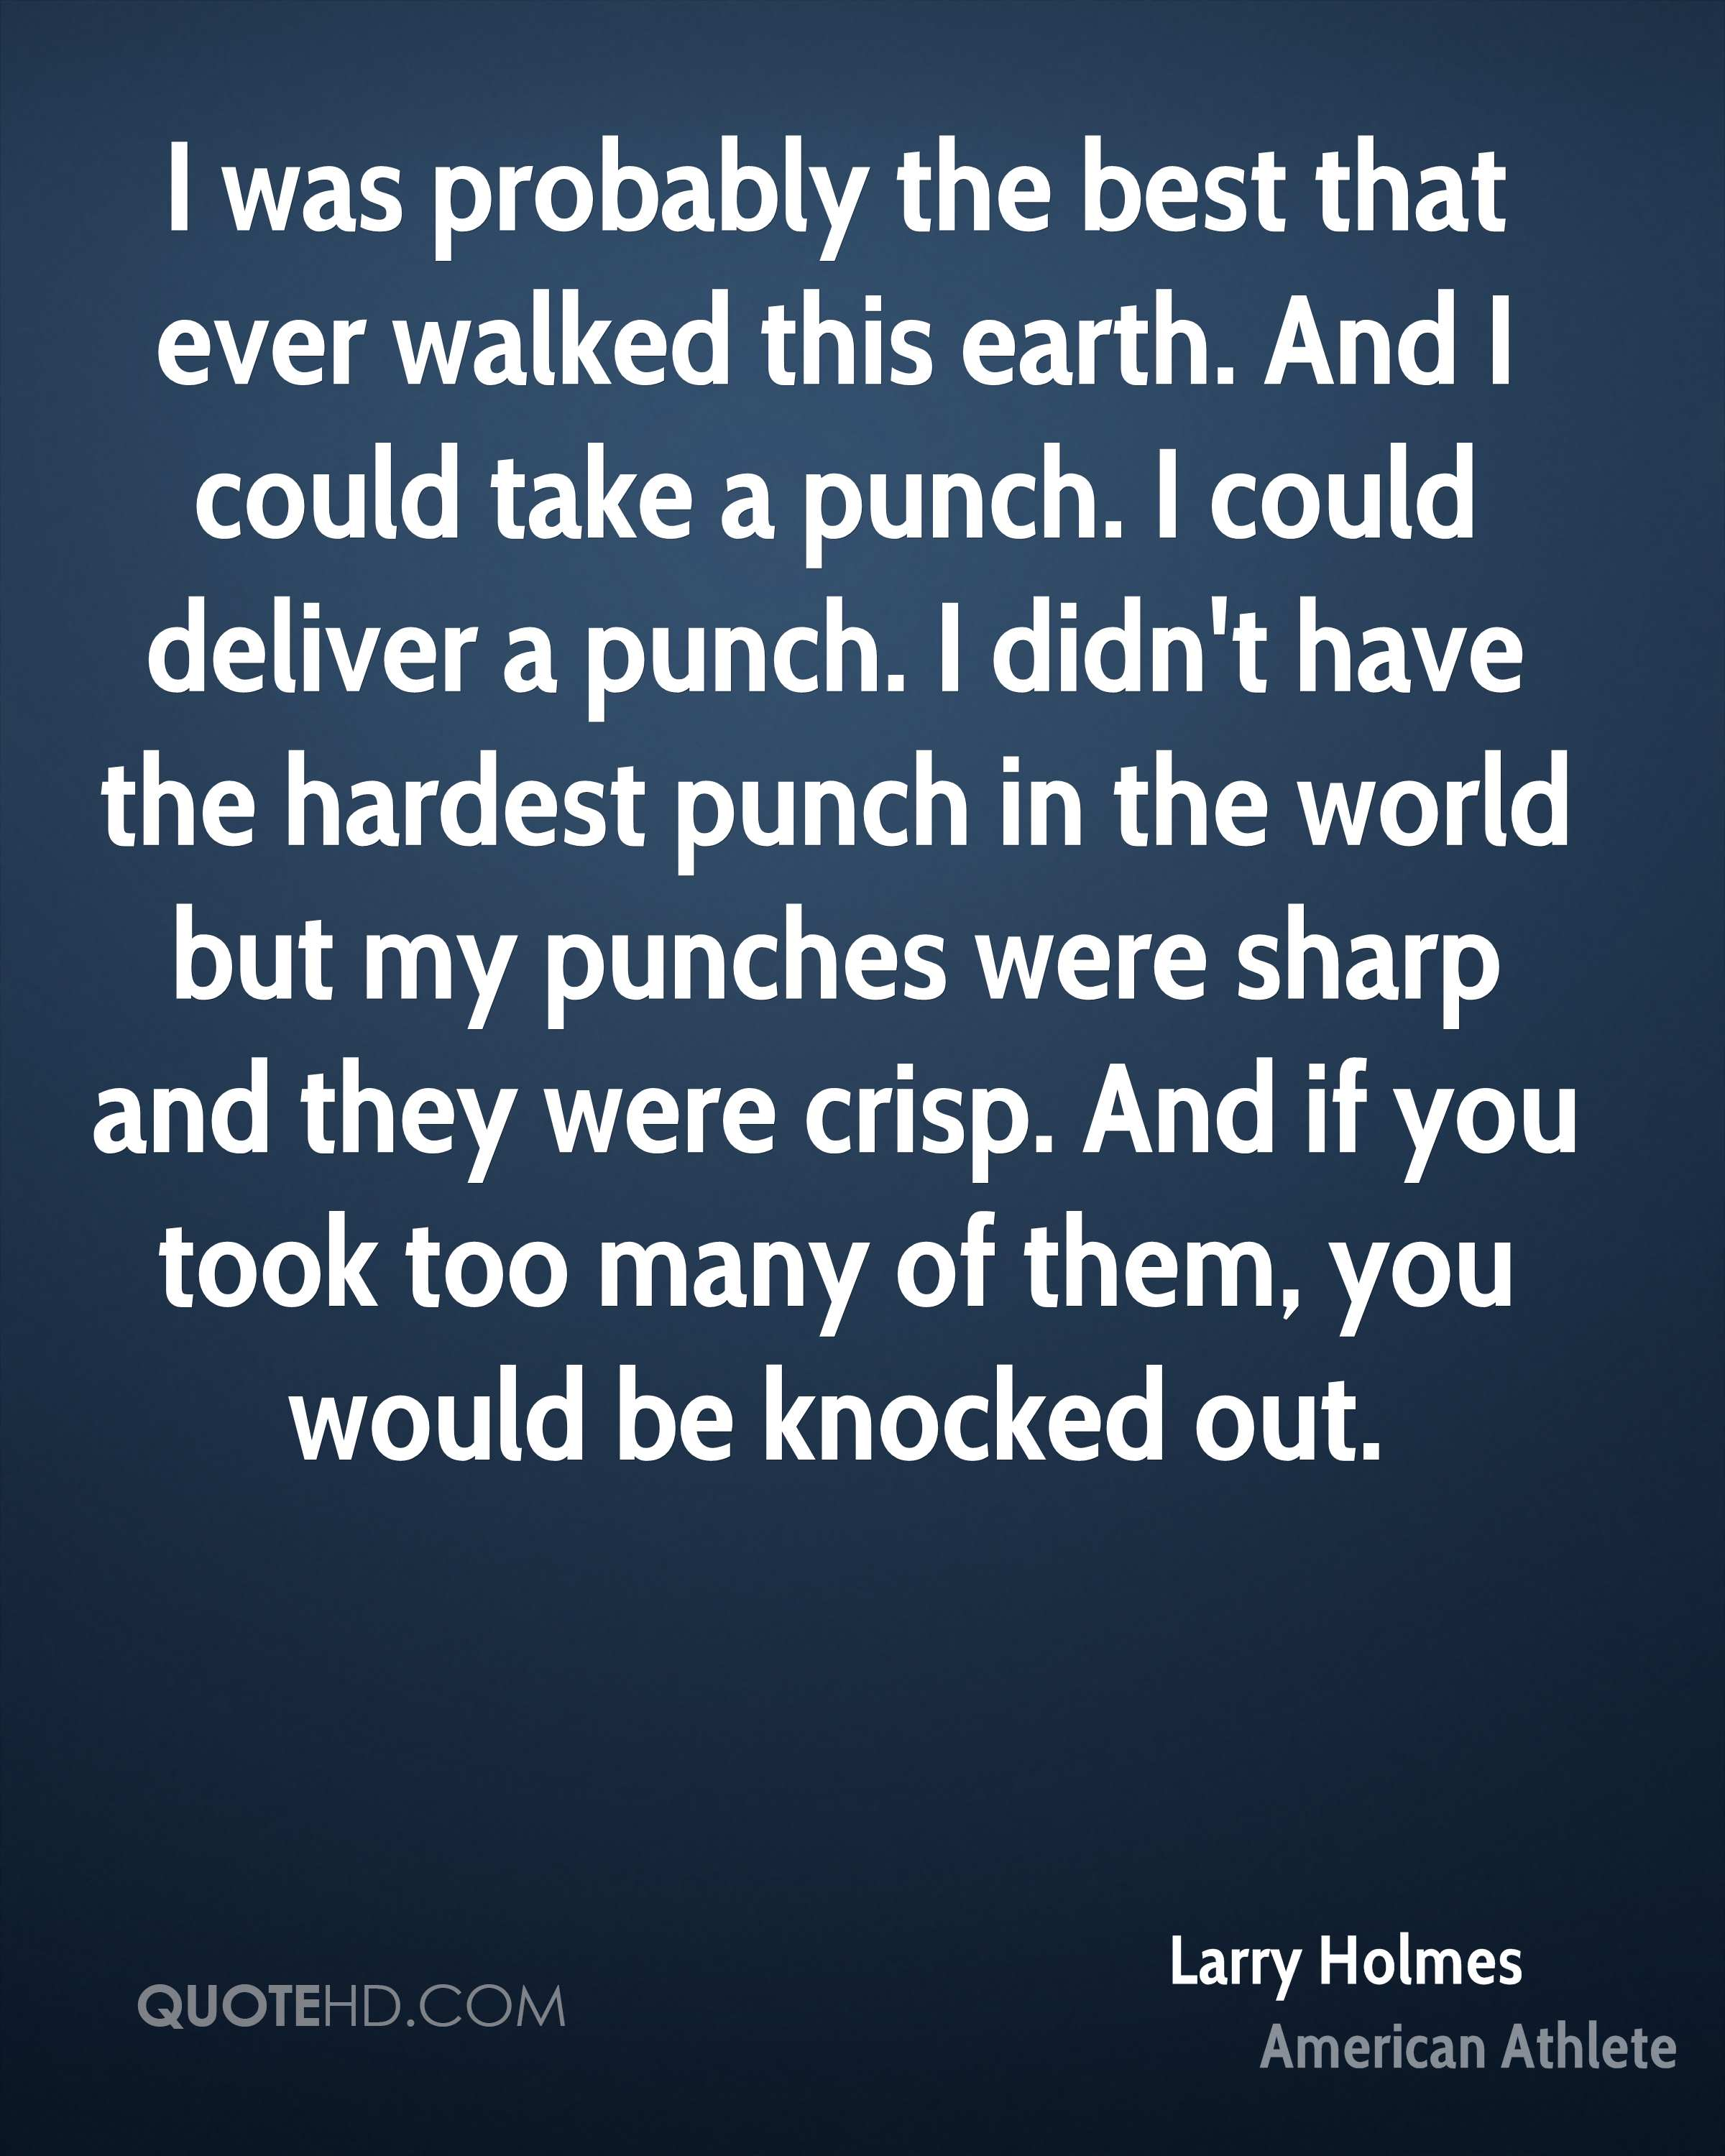 I was probably the best that ever walked this earth. And I could take a punch. I could deliver a punch. I didn't have the hardest punch in the world but my punches were sharp and they were crisp. And if you took too many of them, you would be knocked out.